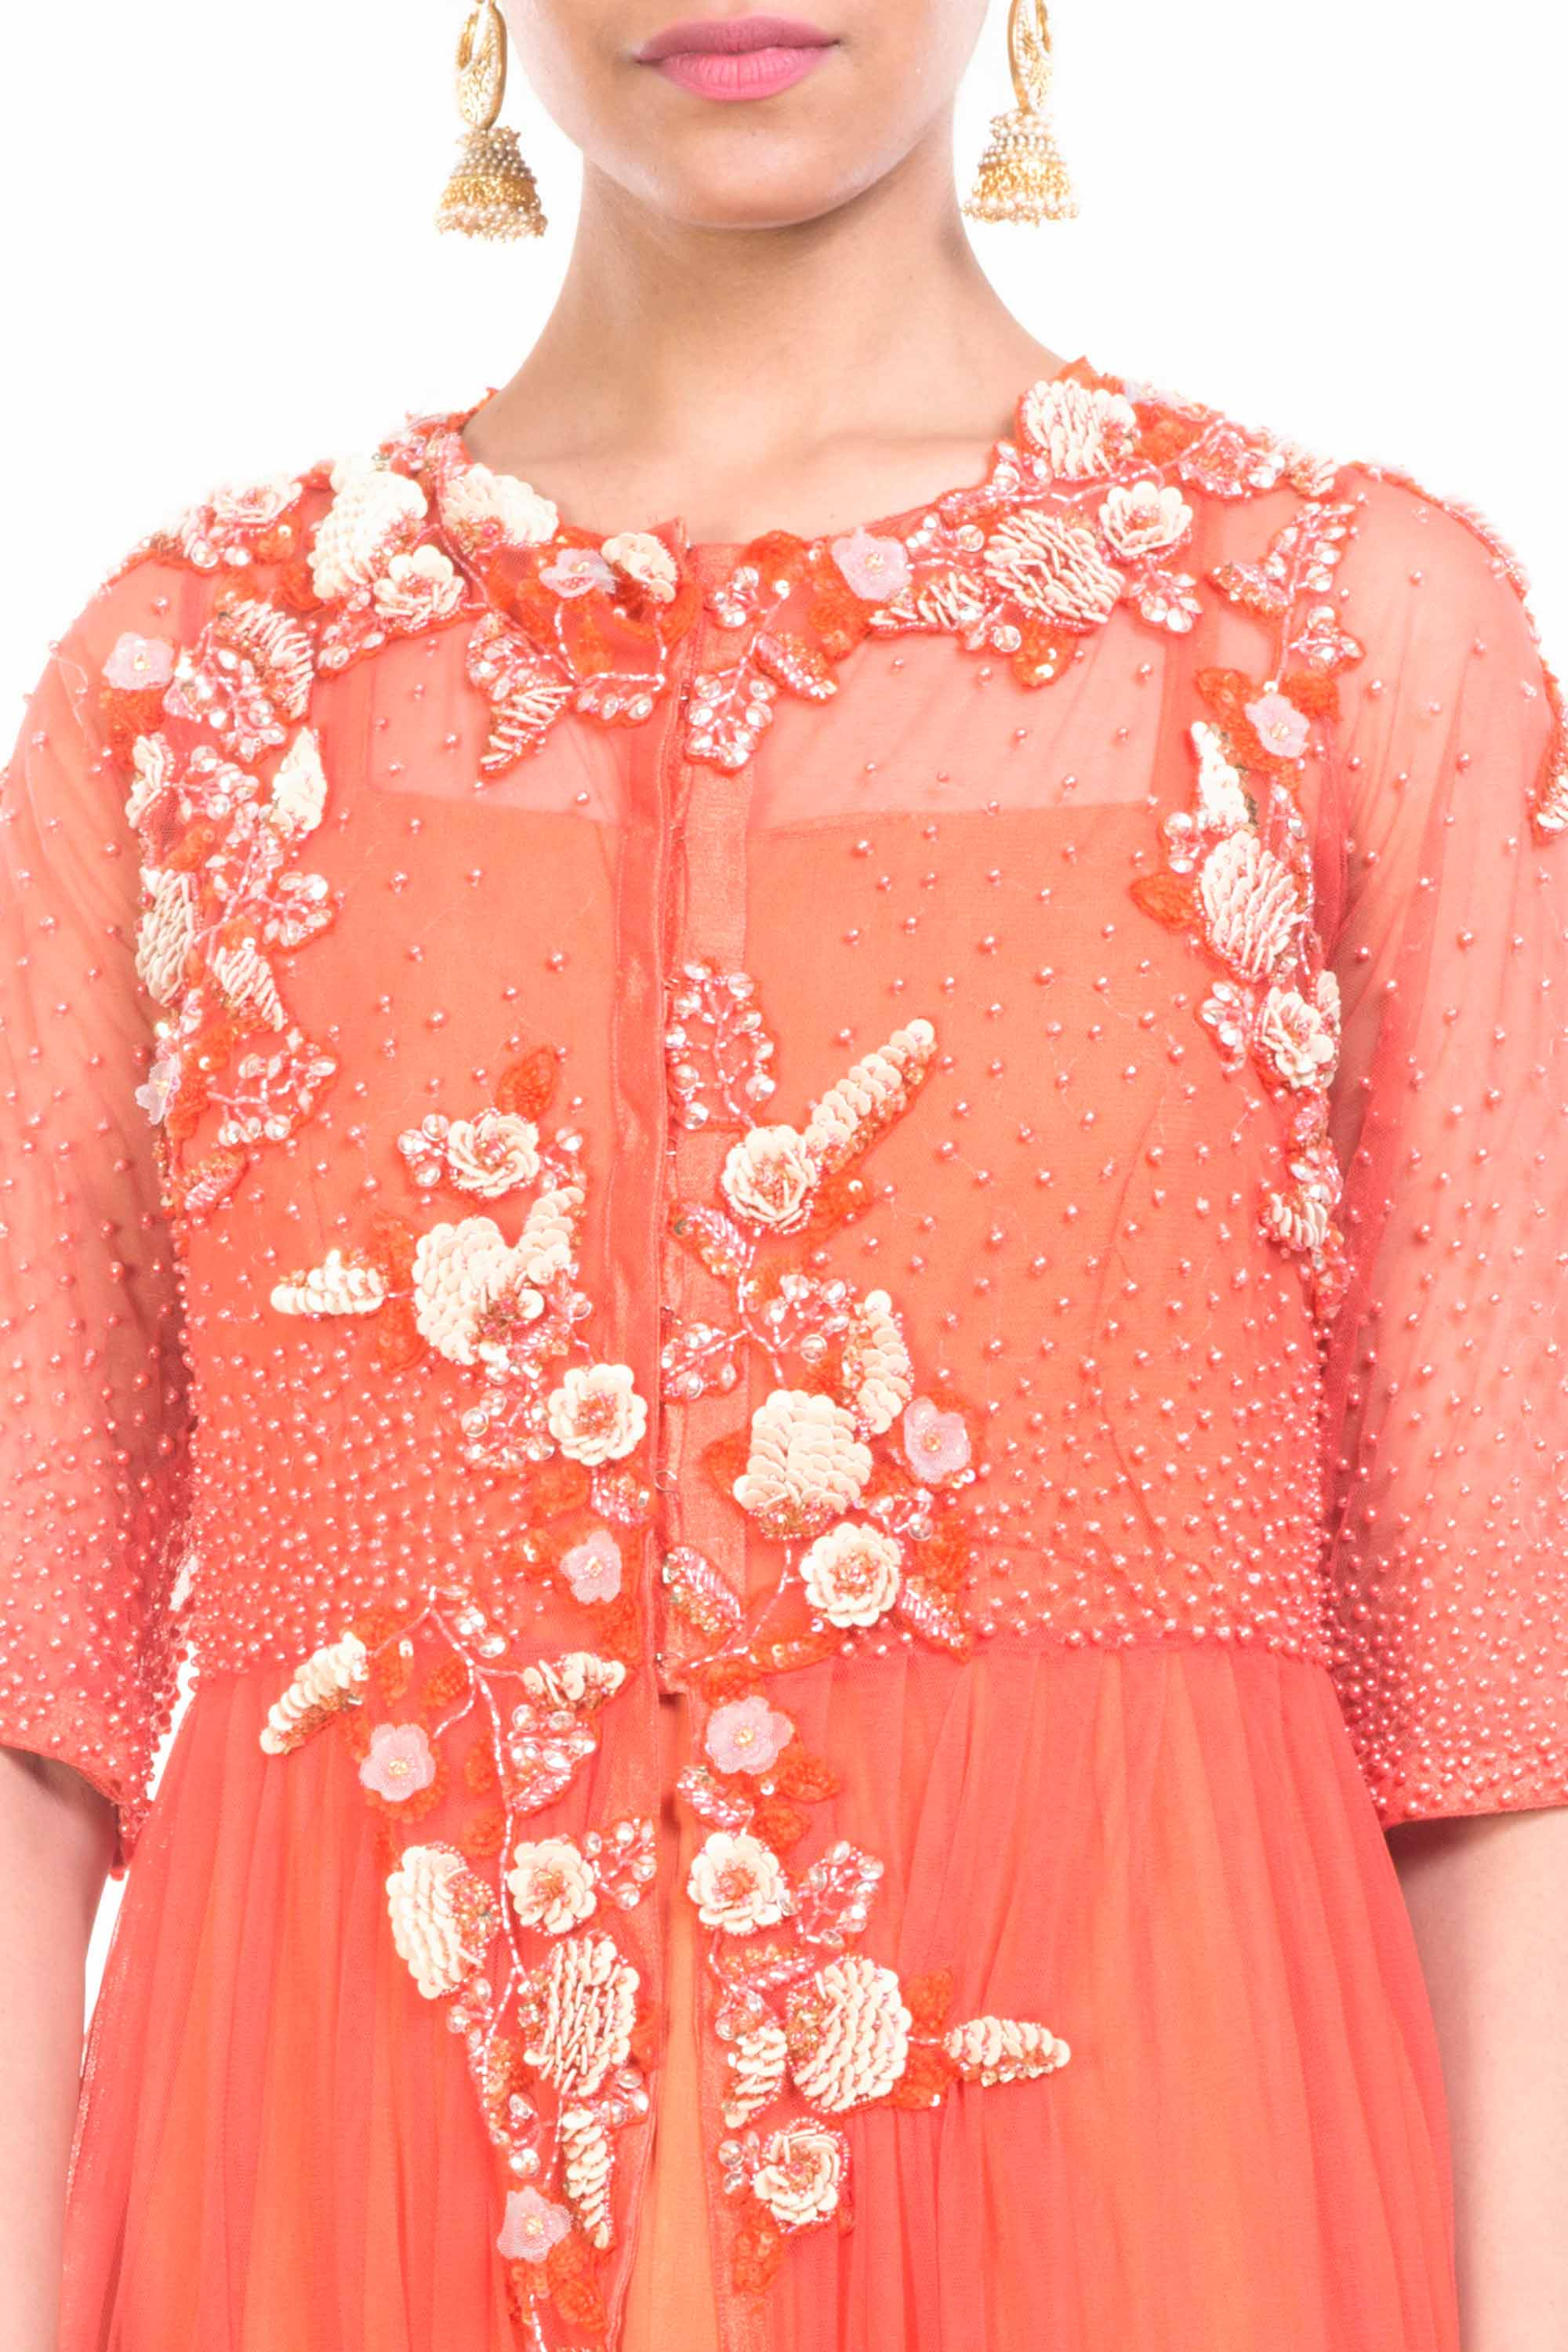 Jacket Style Orange Gown Closeup